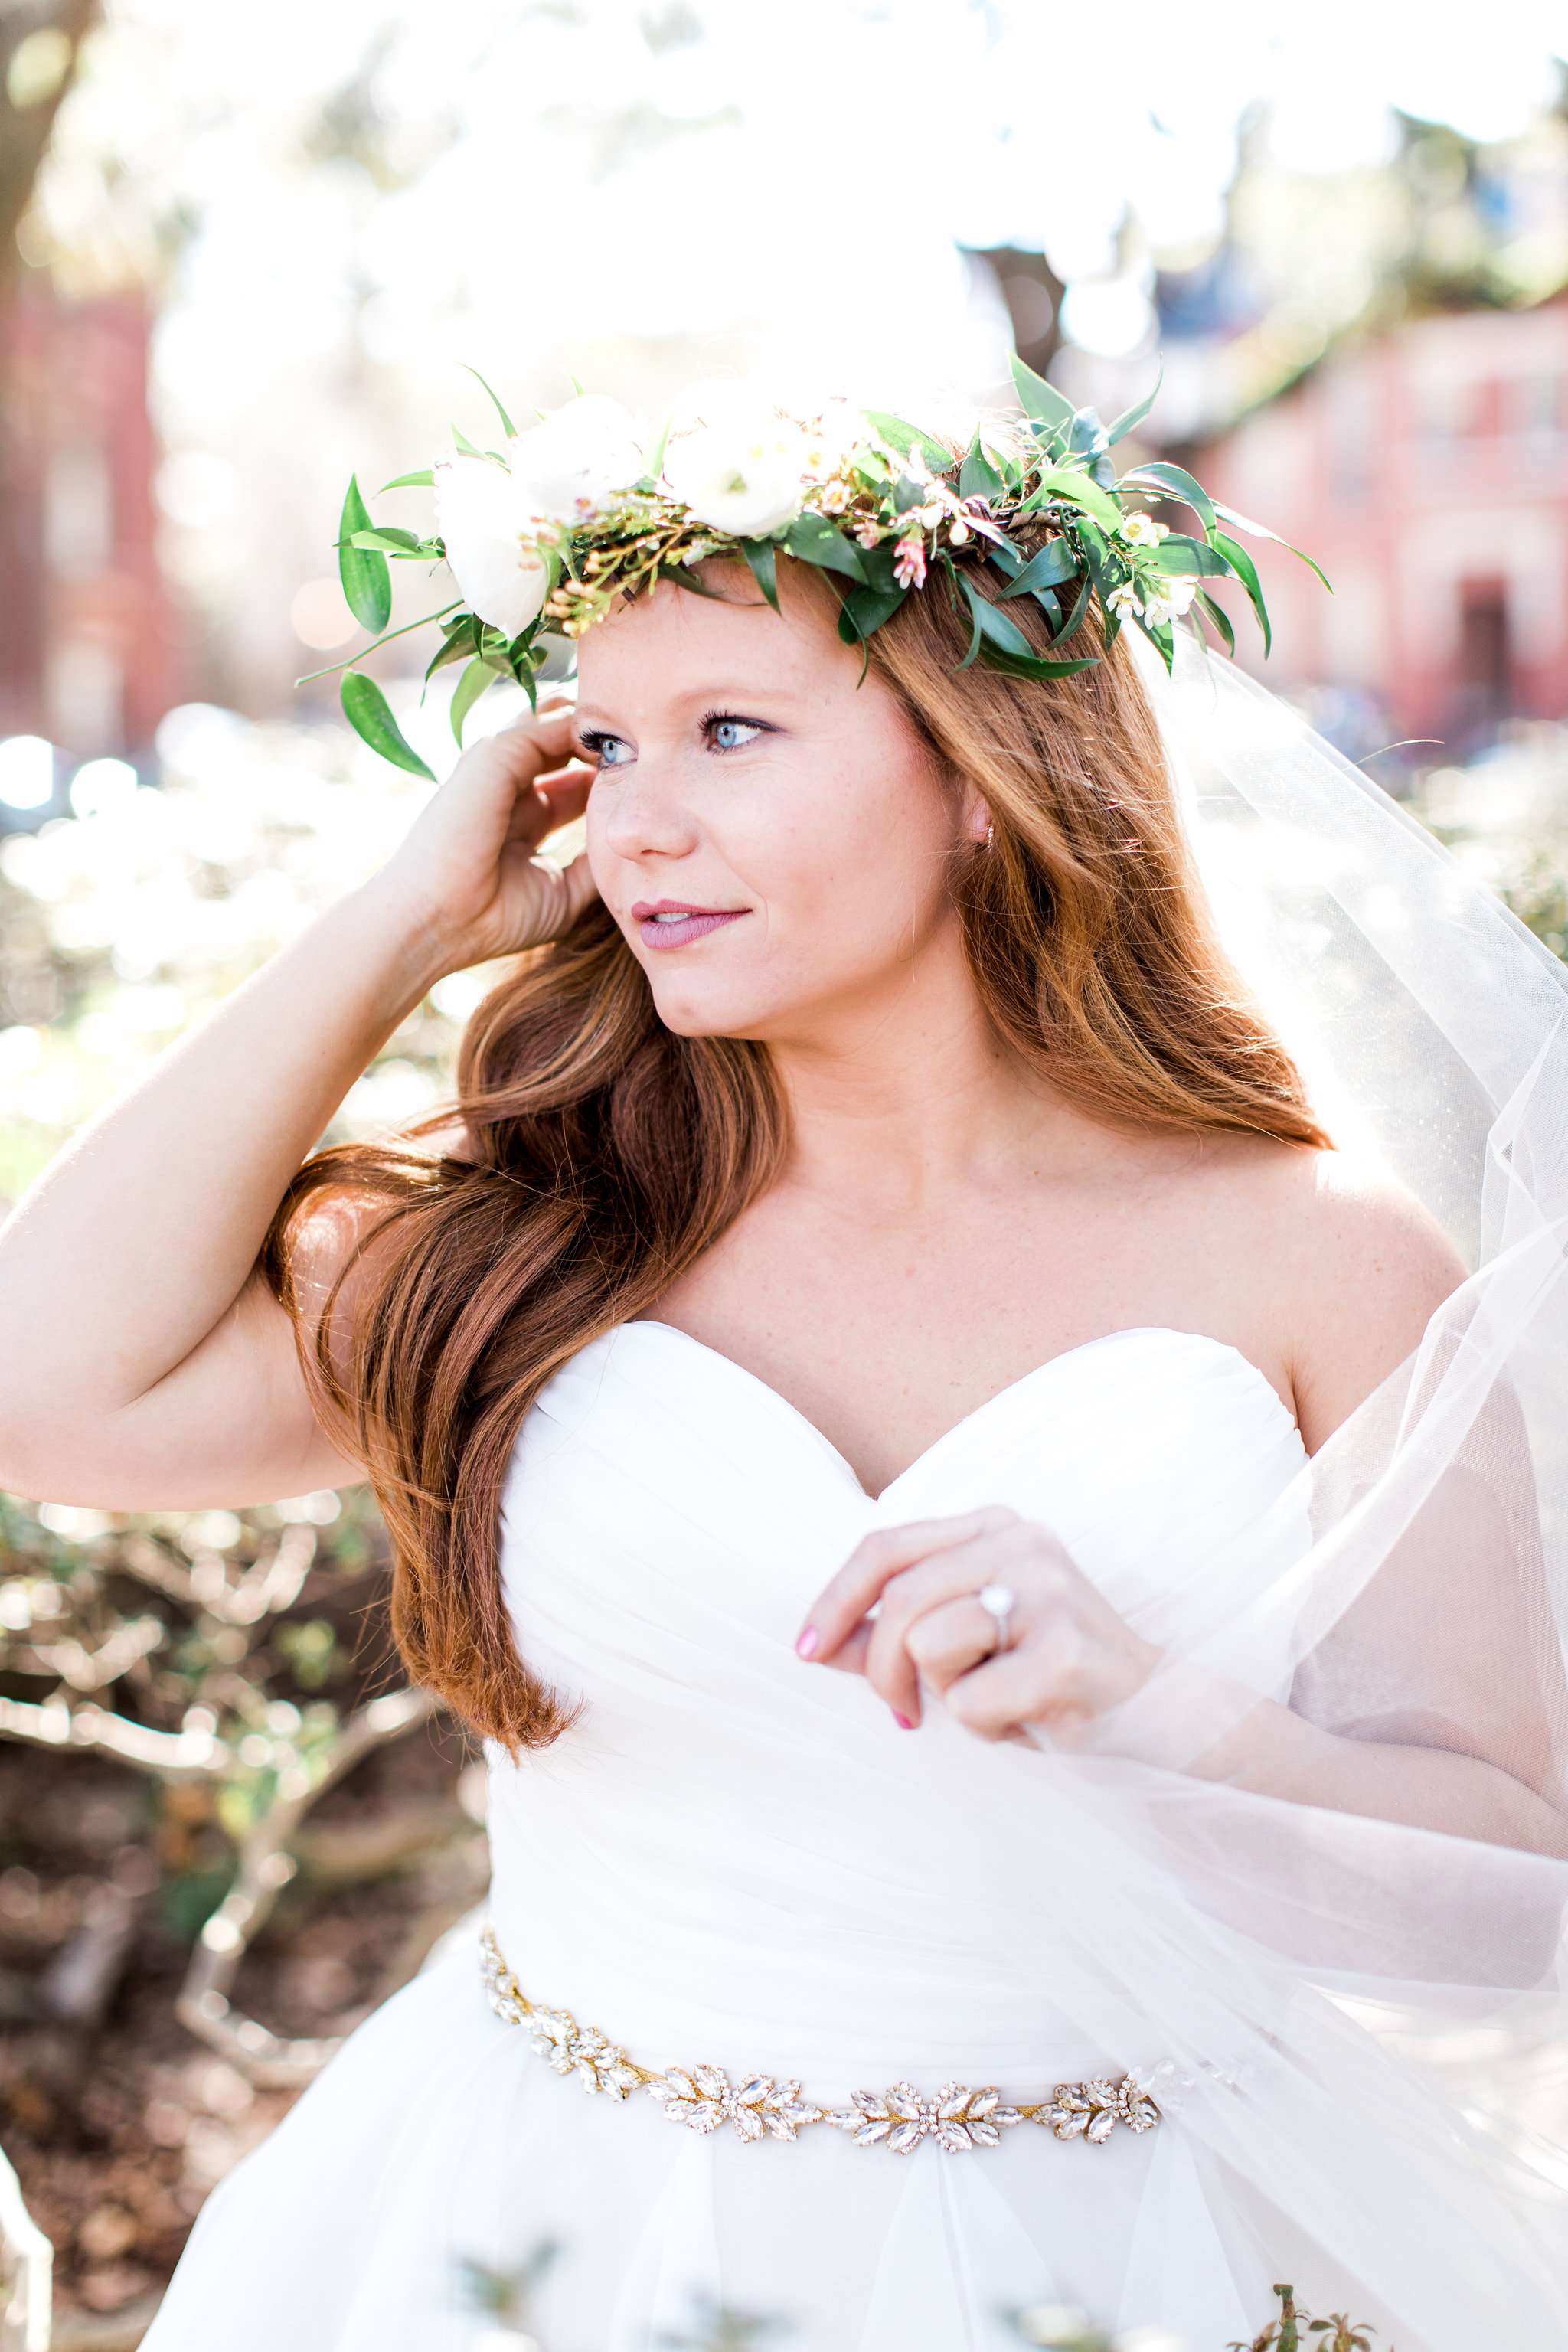 apt-b-photography-mary-elizabeths-bridal-boutique-adele-amelia-accessories-morilee-5504-savannah-bridal-boutique-savannah-weddings-savannah-wedding-photographer-savannah-bridal-gowns-savannah-wedding-dresses-historic-savannah-wedding-10.jpg